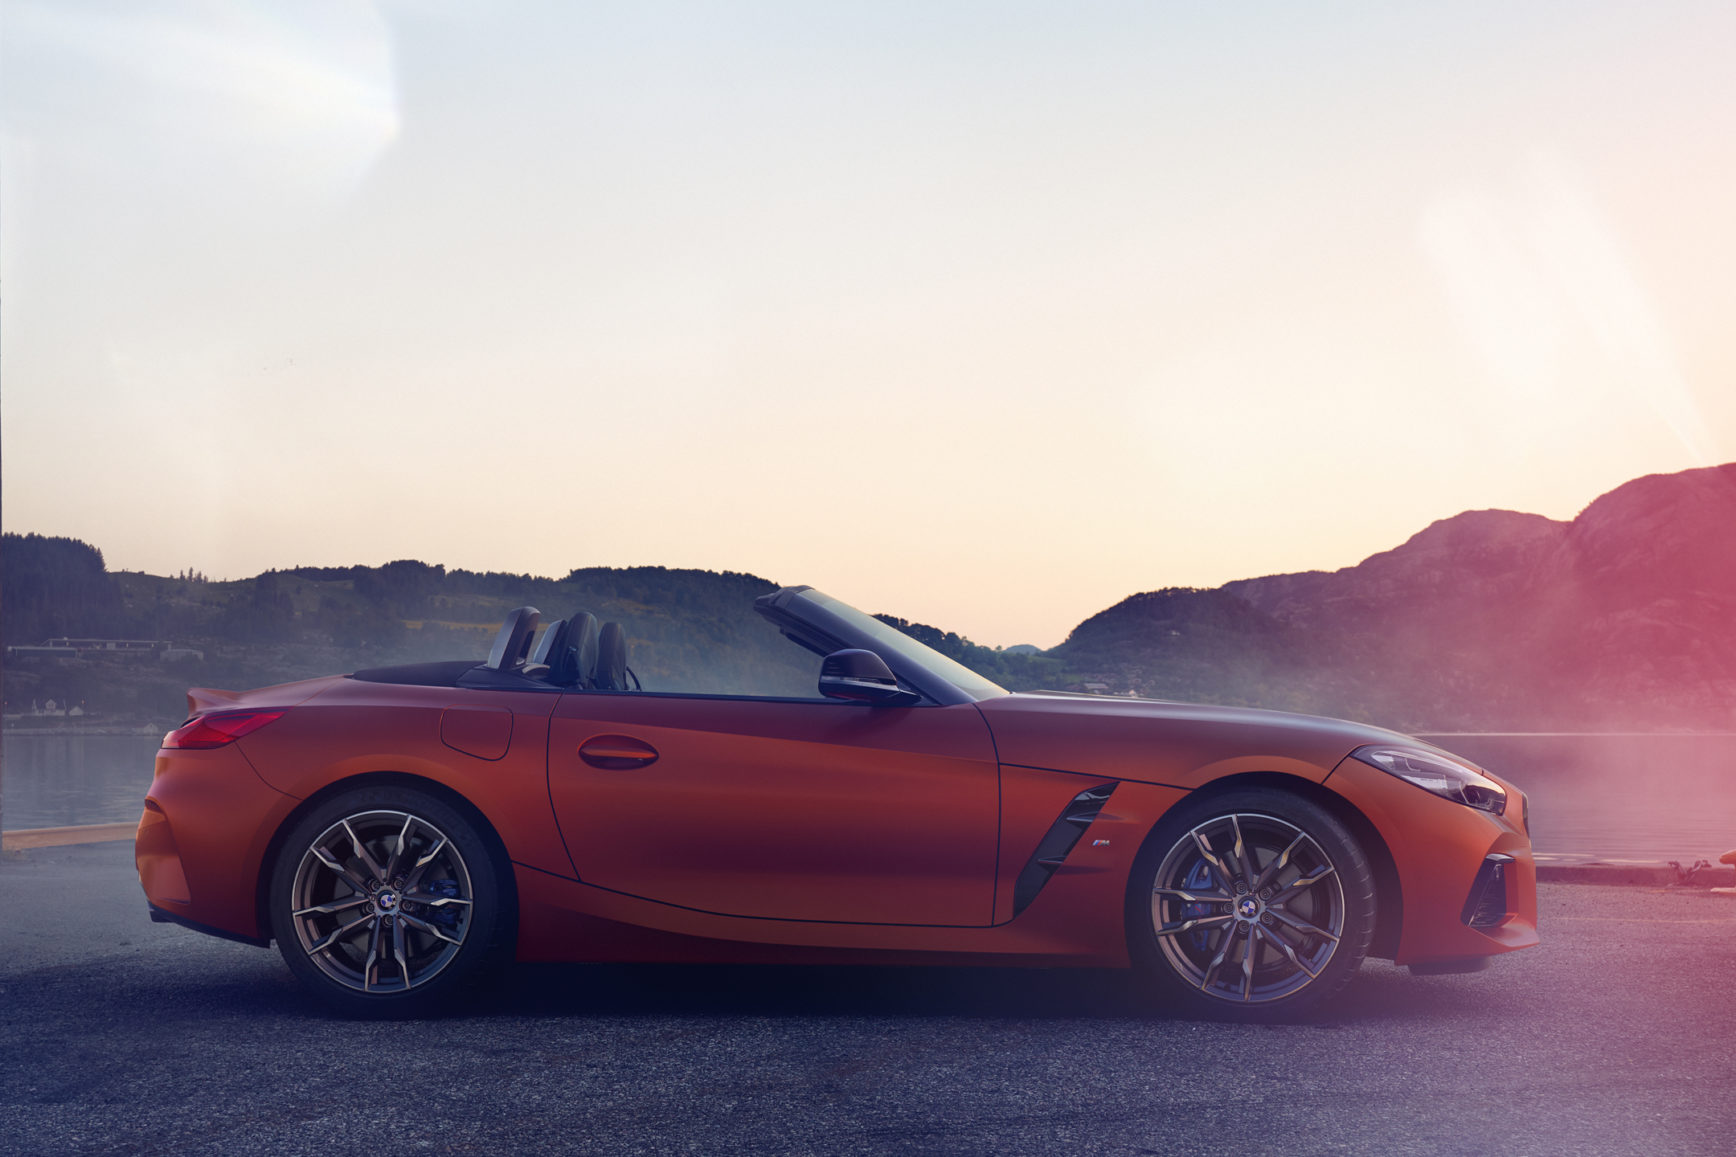 BMW Z4 Roadster - 2018 - side-face / profil